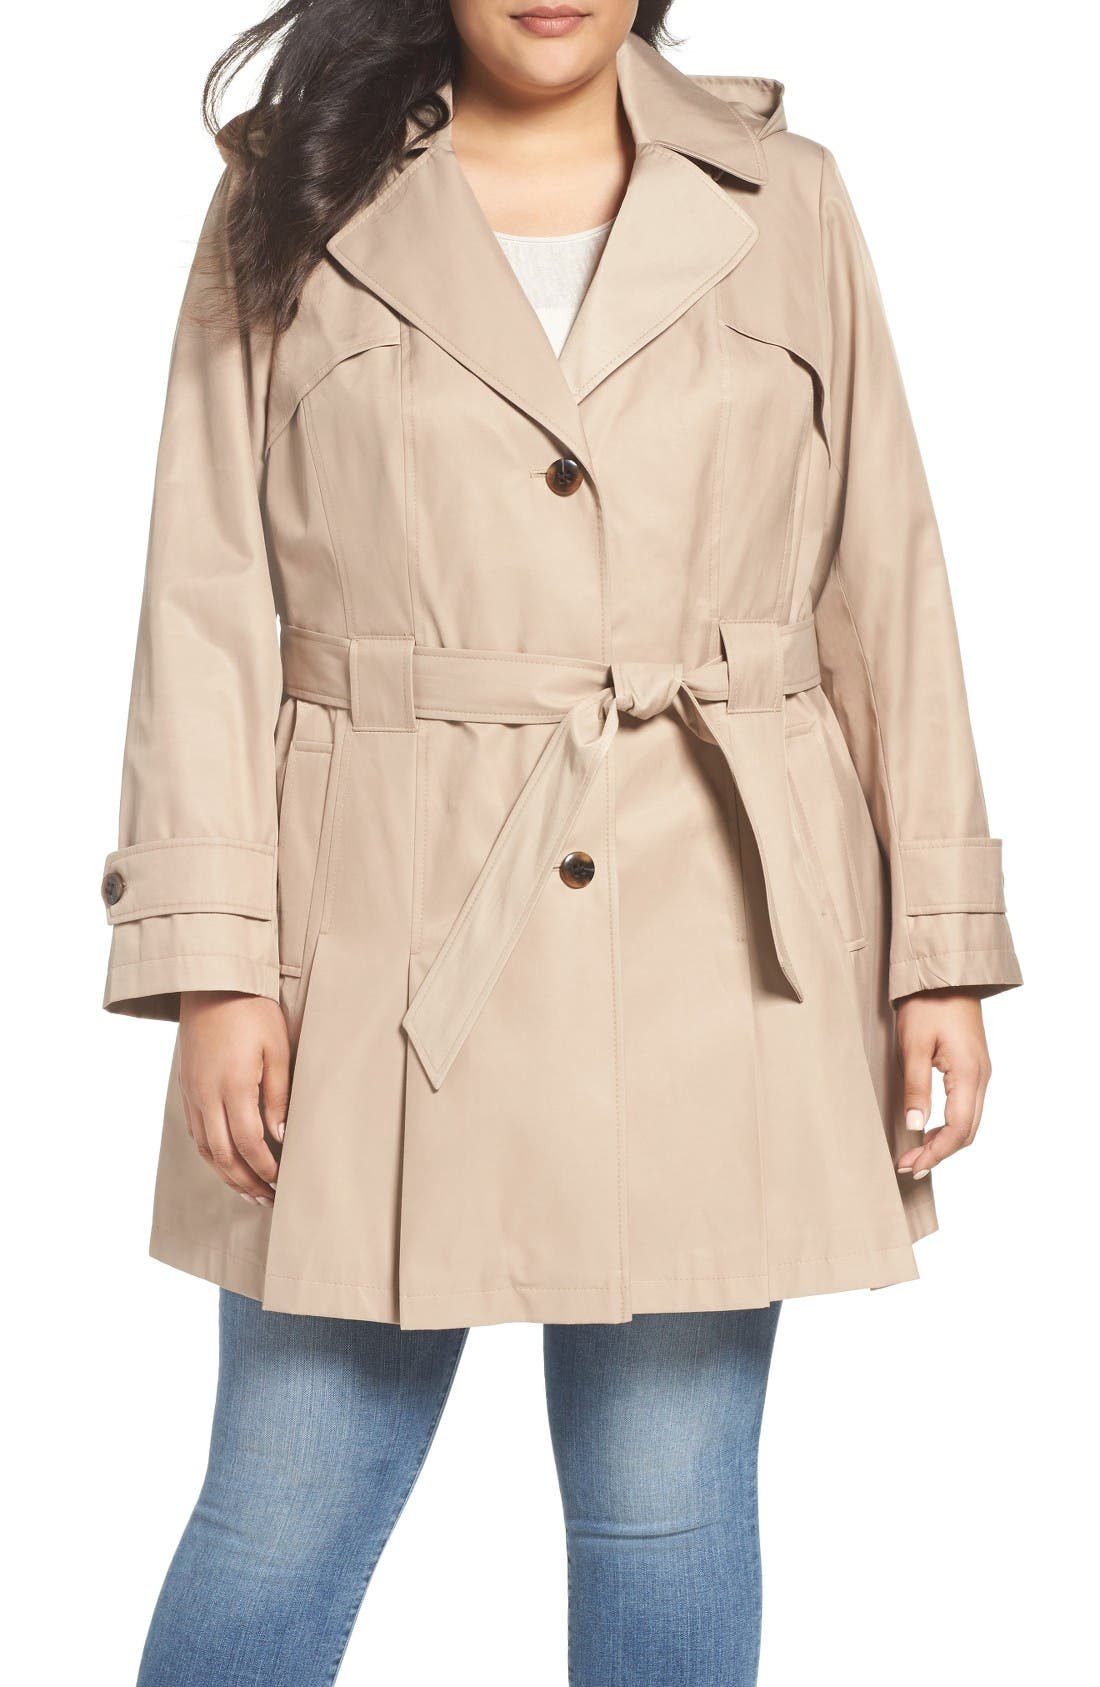 Alternate Image 1 Selected - Via Spiga 'Scarpa' Single Breasted Trench Coat (Plus Size)